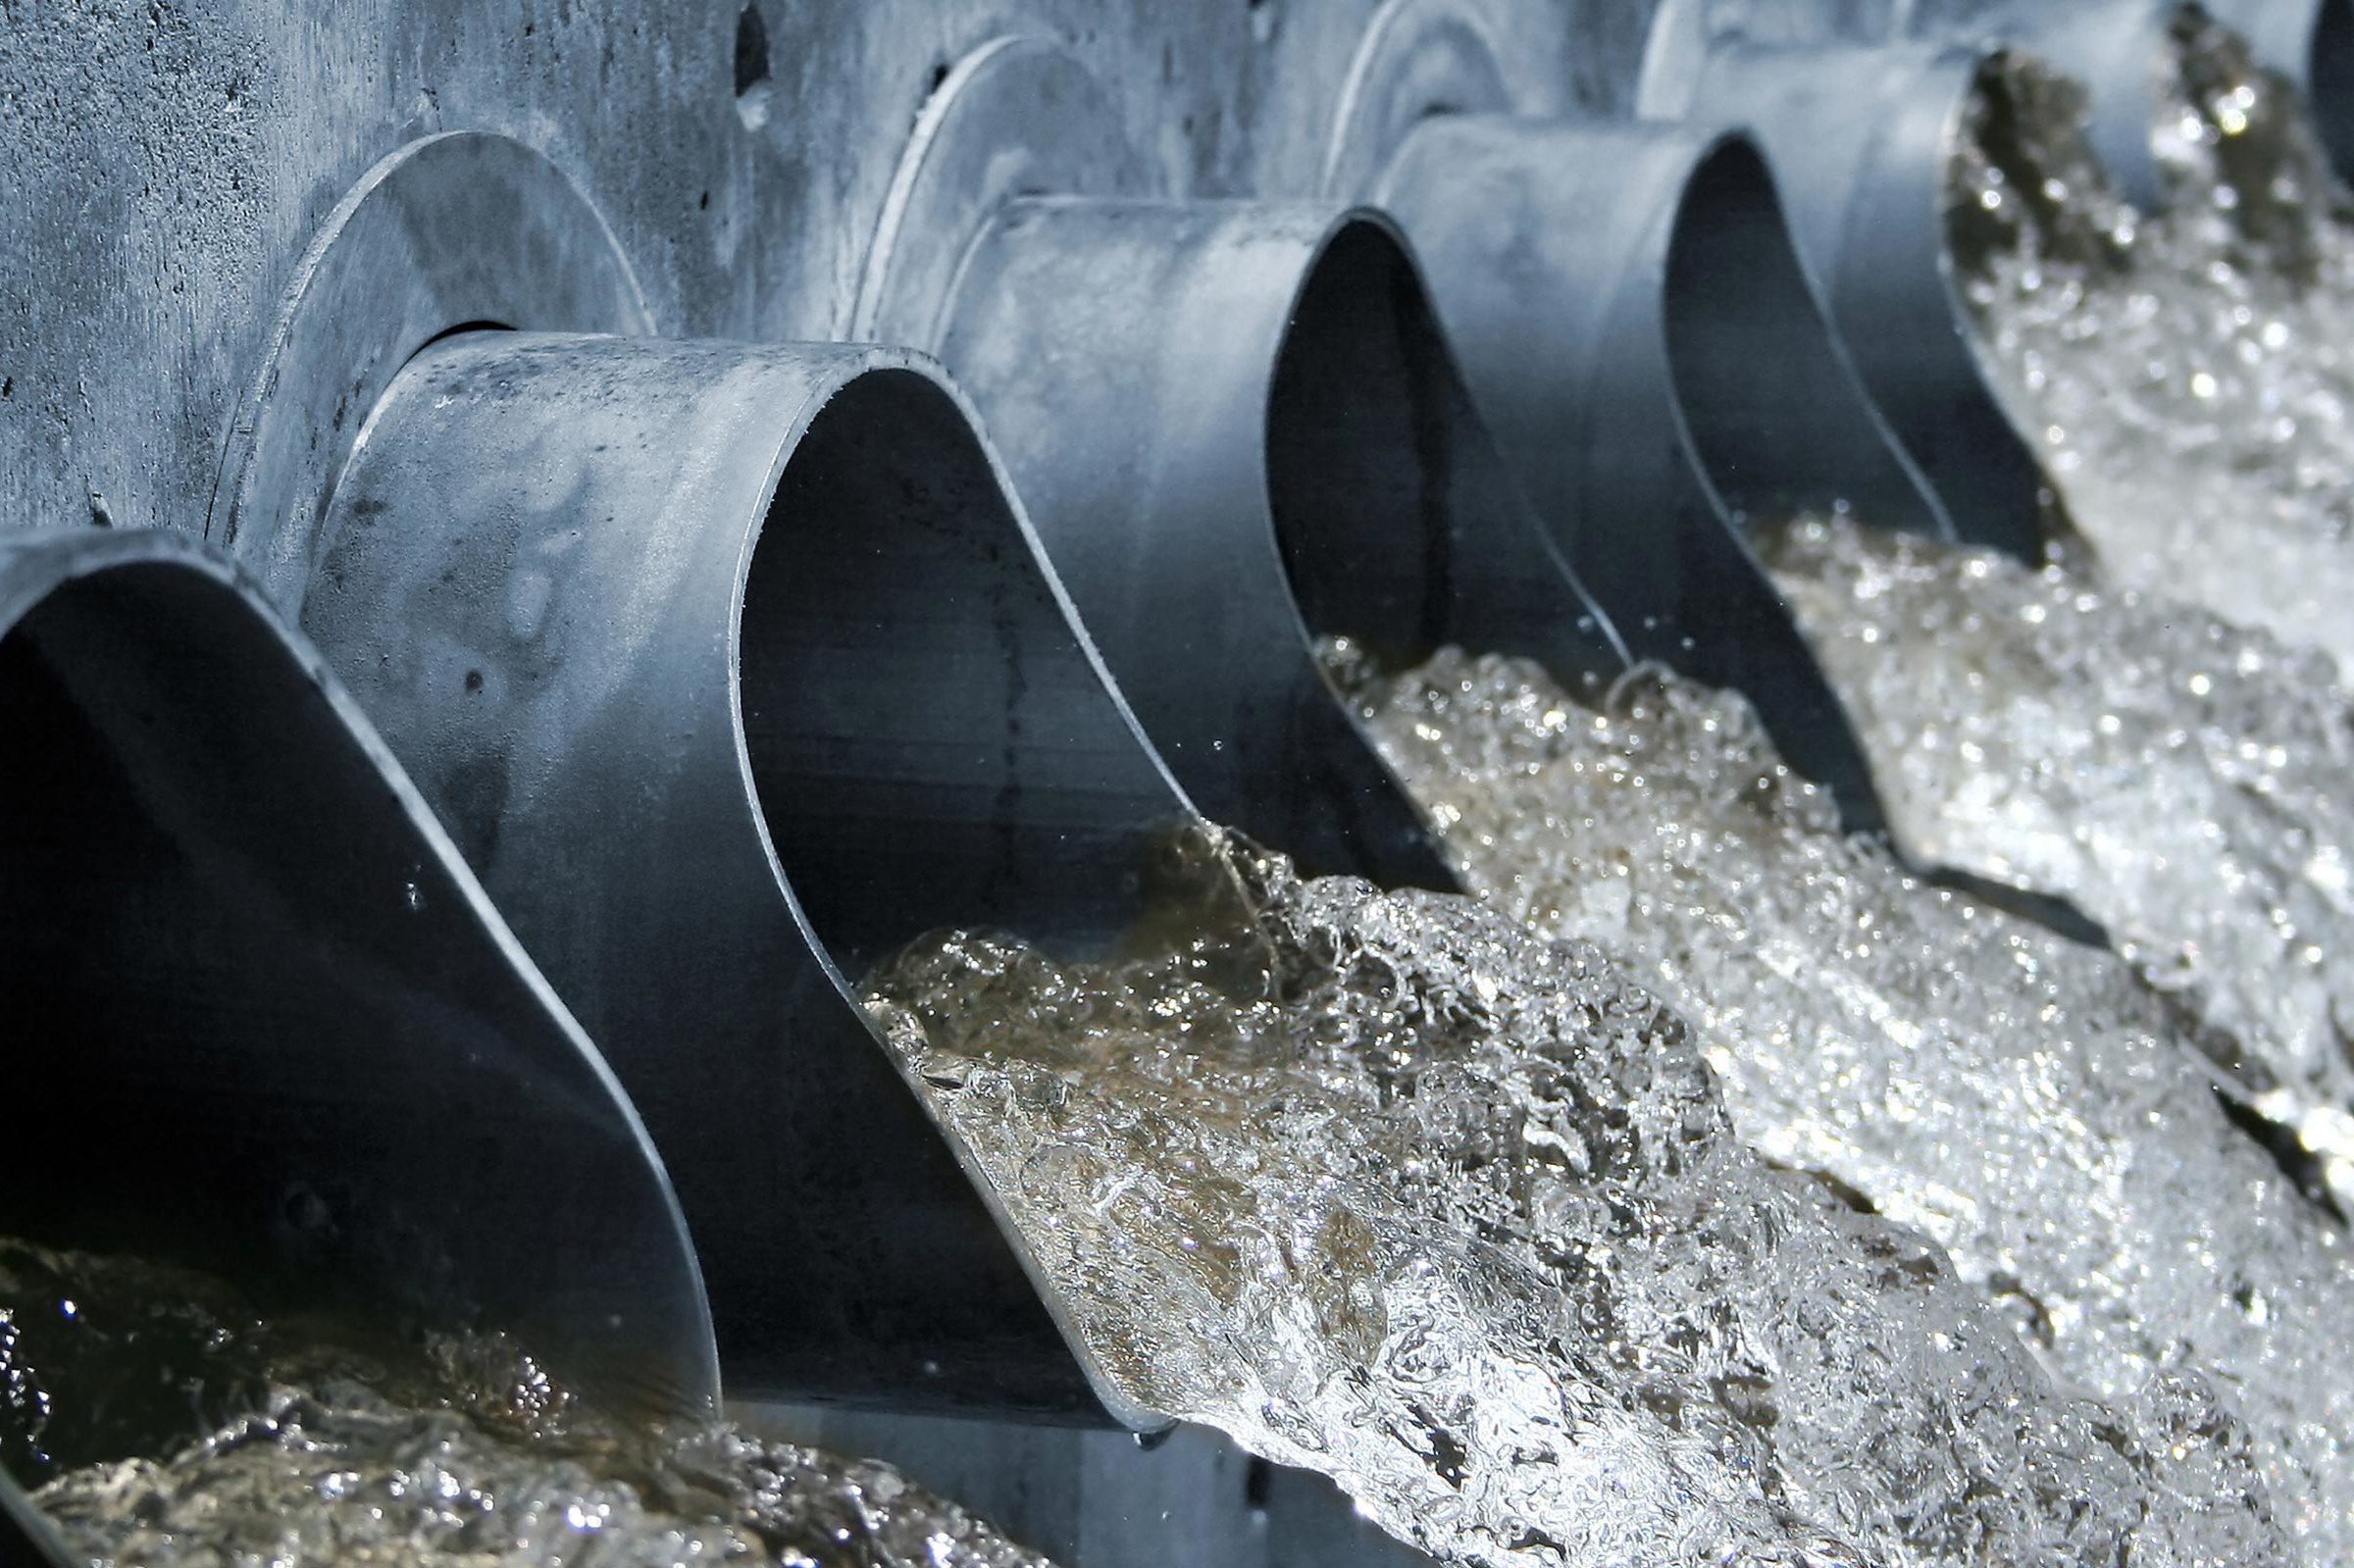 Water gushing out of steel spouts. Courtesy Getty Images.